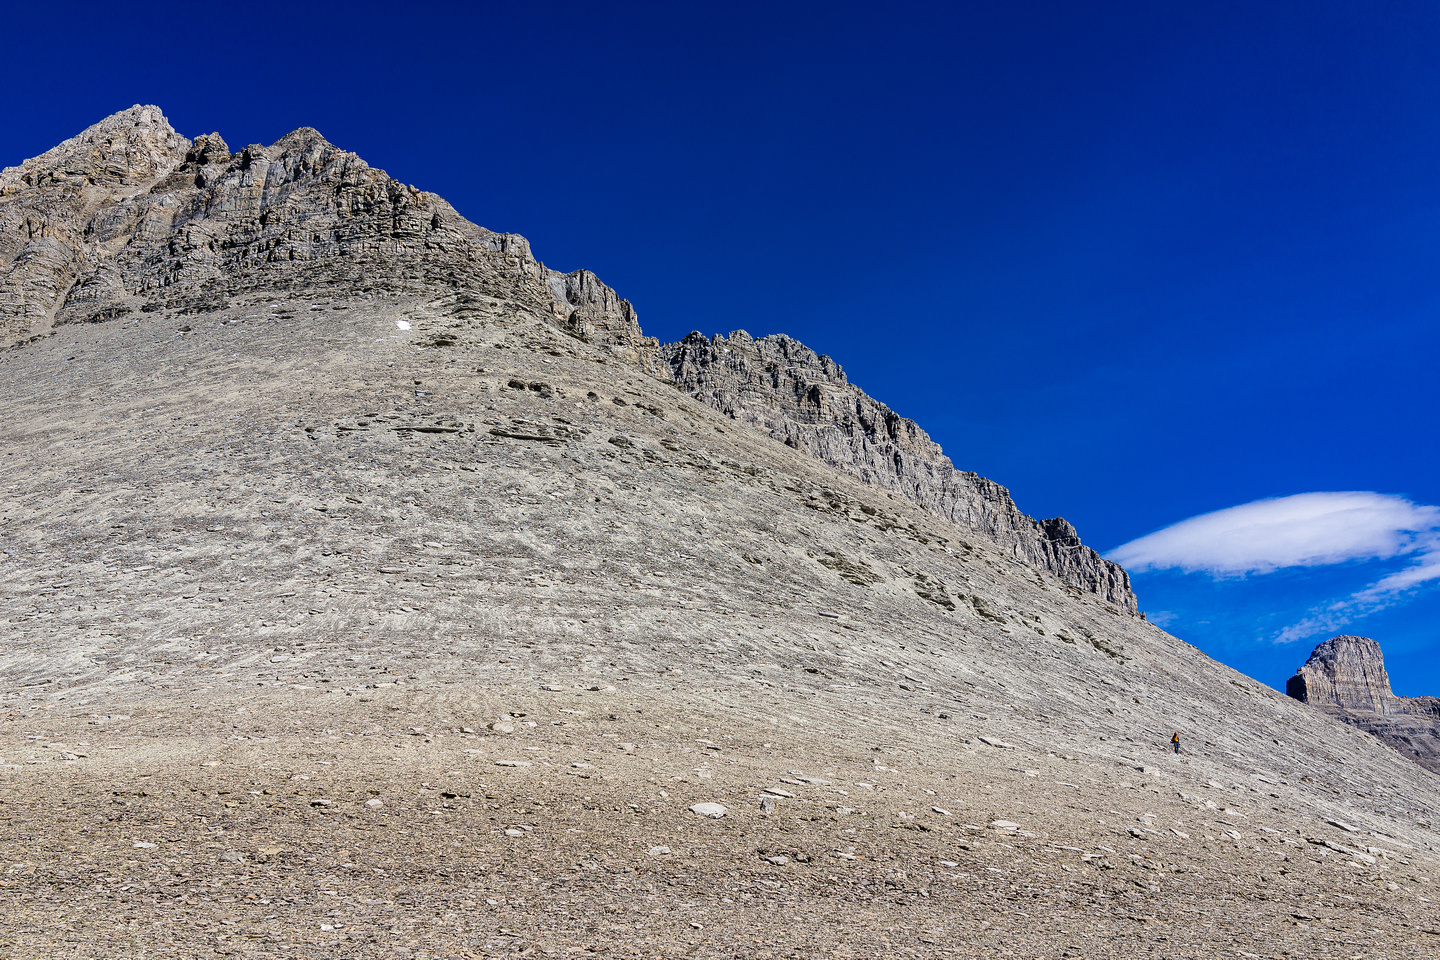 Raf looks tiny next to the huge terrain with the SW ridge rising to the NW summit at upper left.